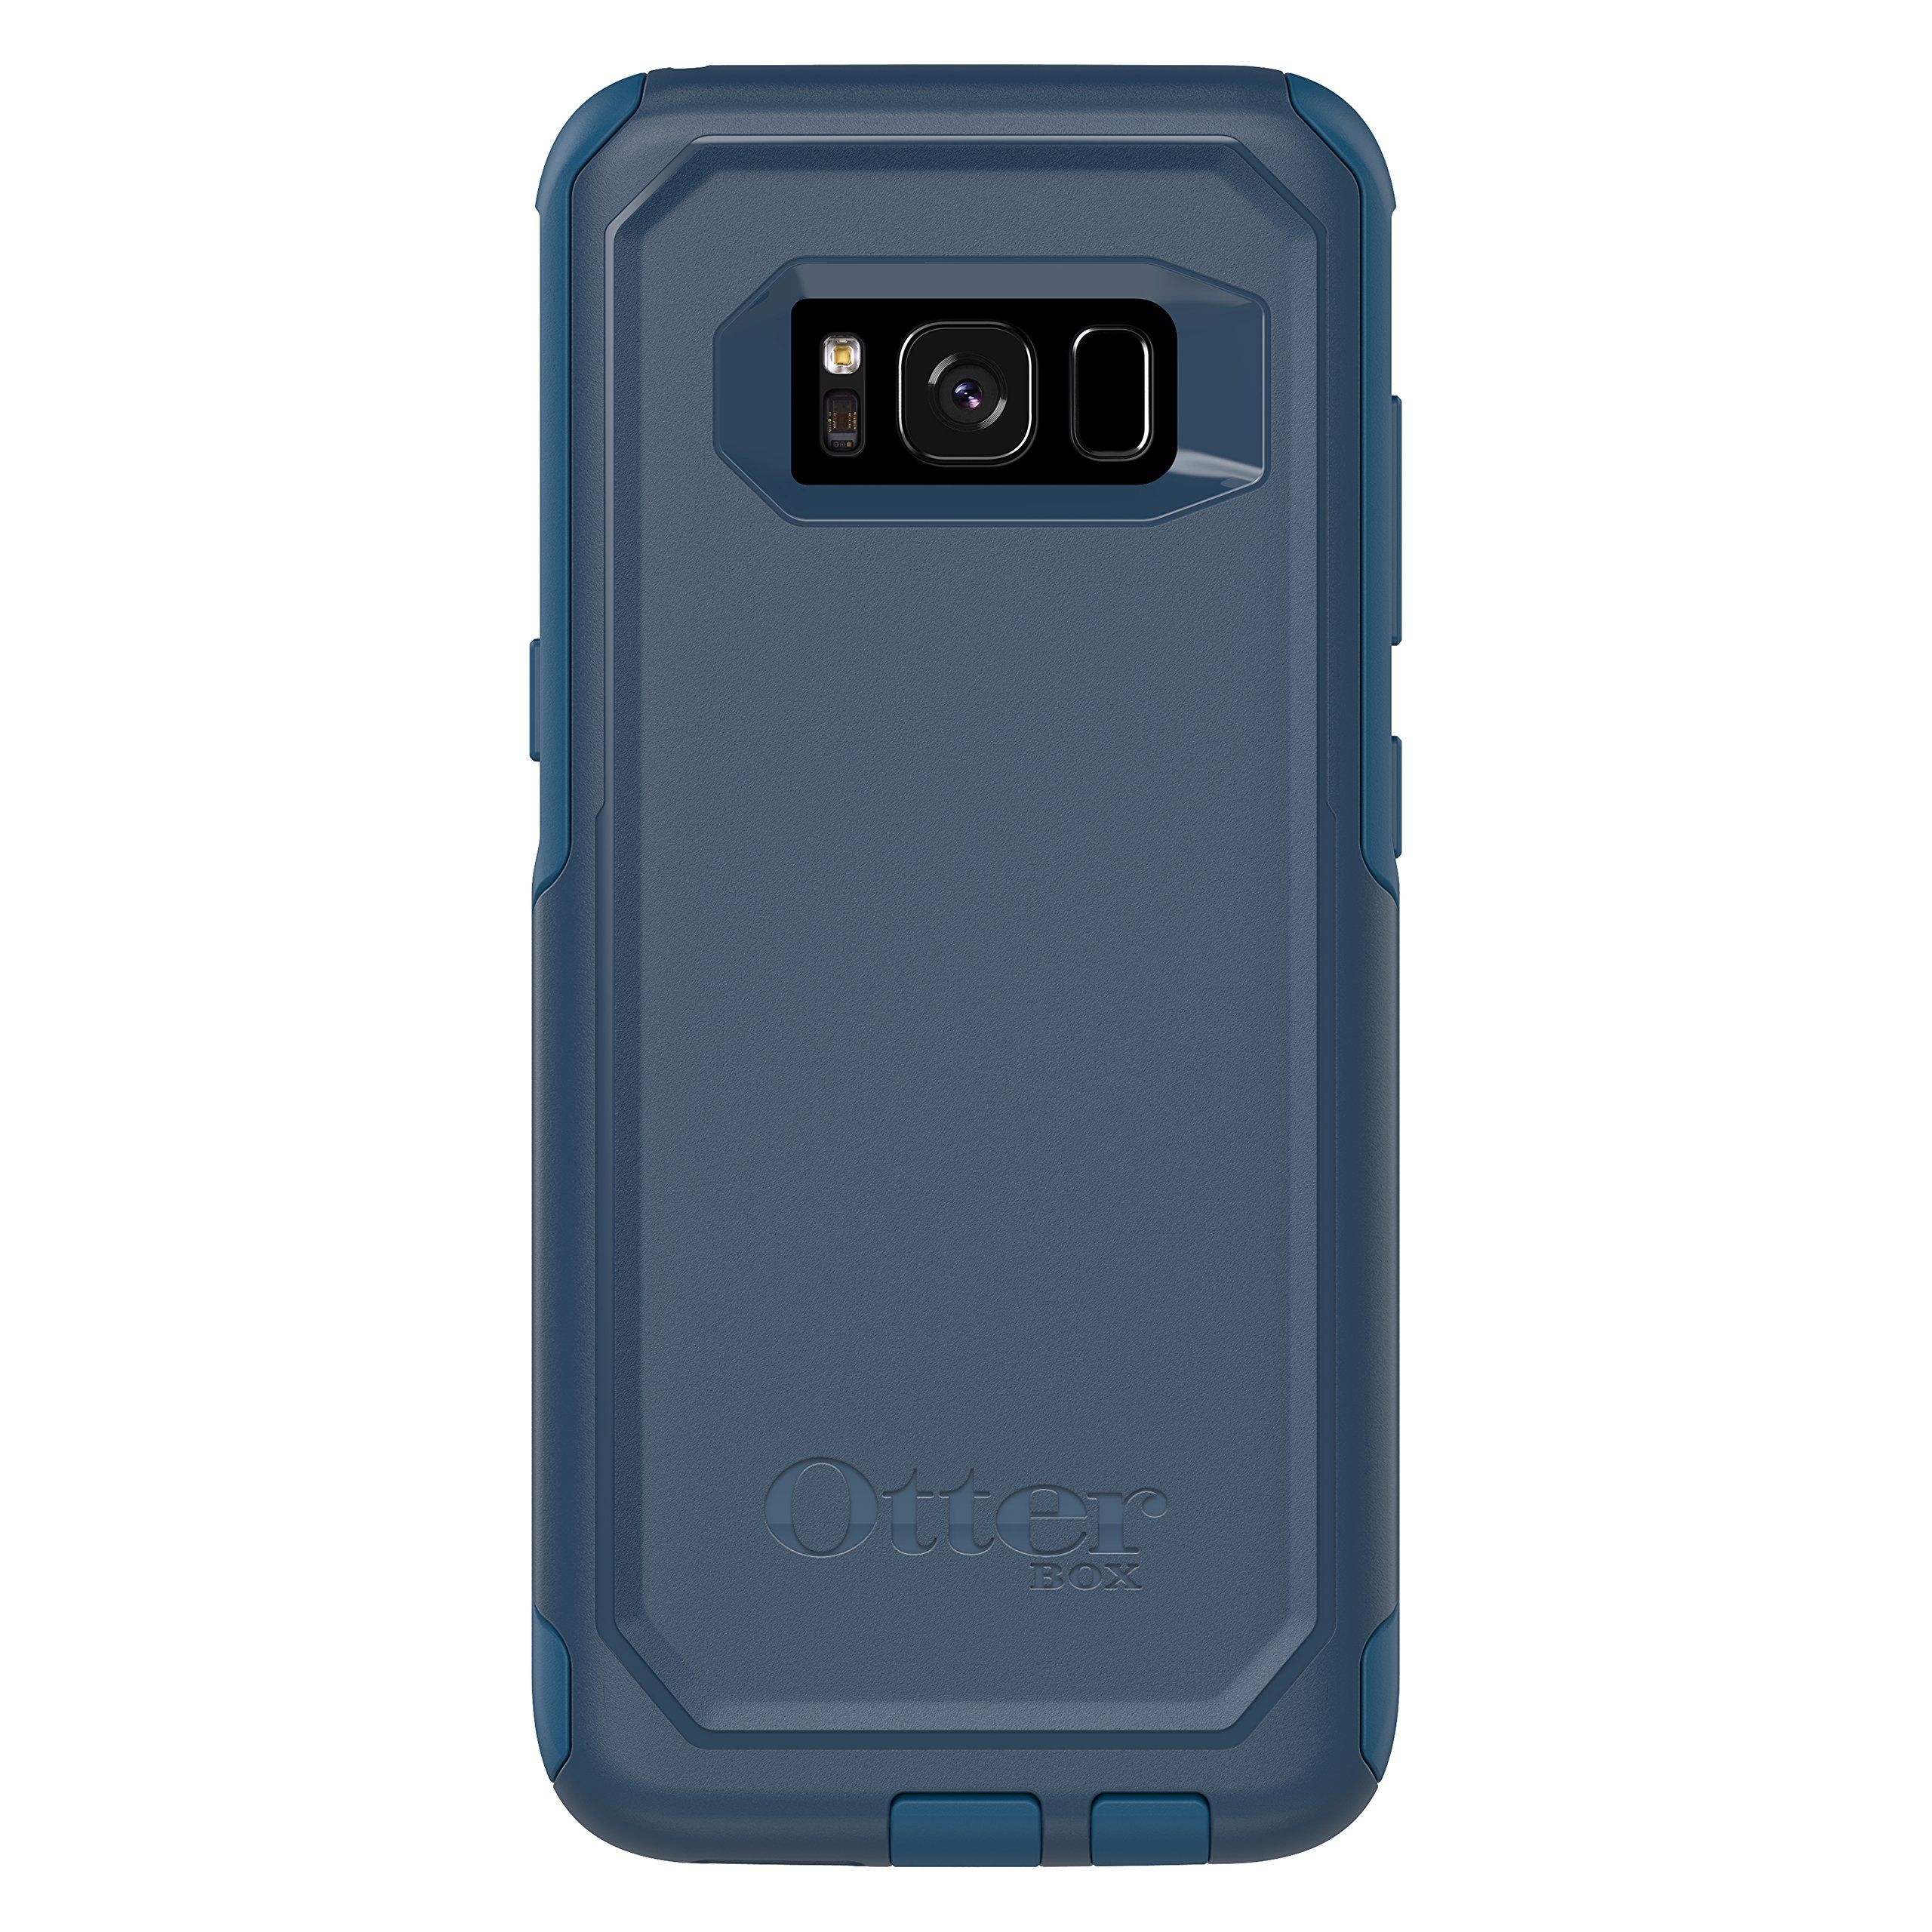 OtterBox MUTER SERIES for Samsung Galaxy S8 Frustration Free Packaging BESPOKE WAY BLAZER BLUE STORMY SEAS BLUE patible with Samsung Galaxy S8